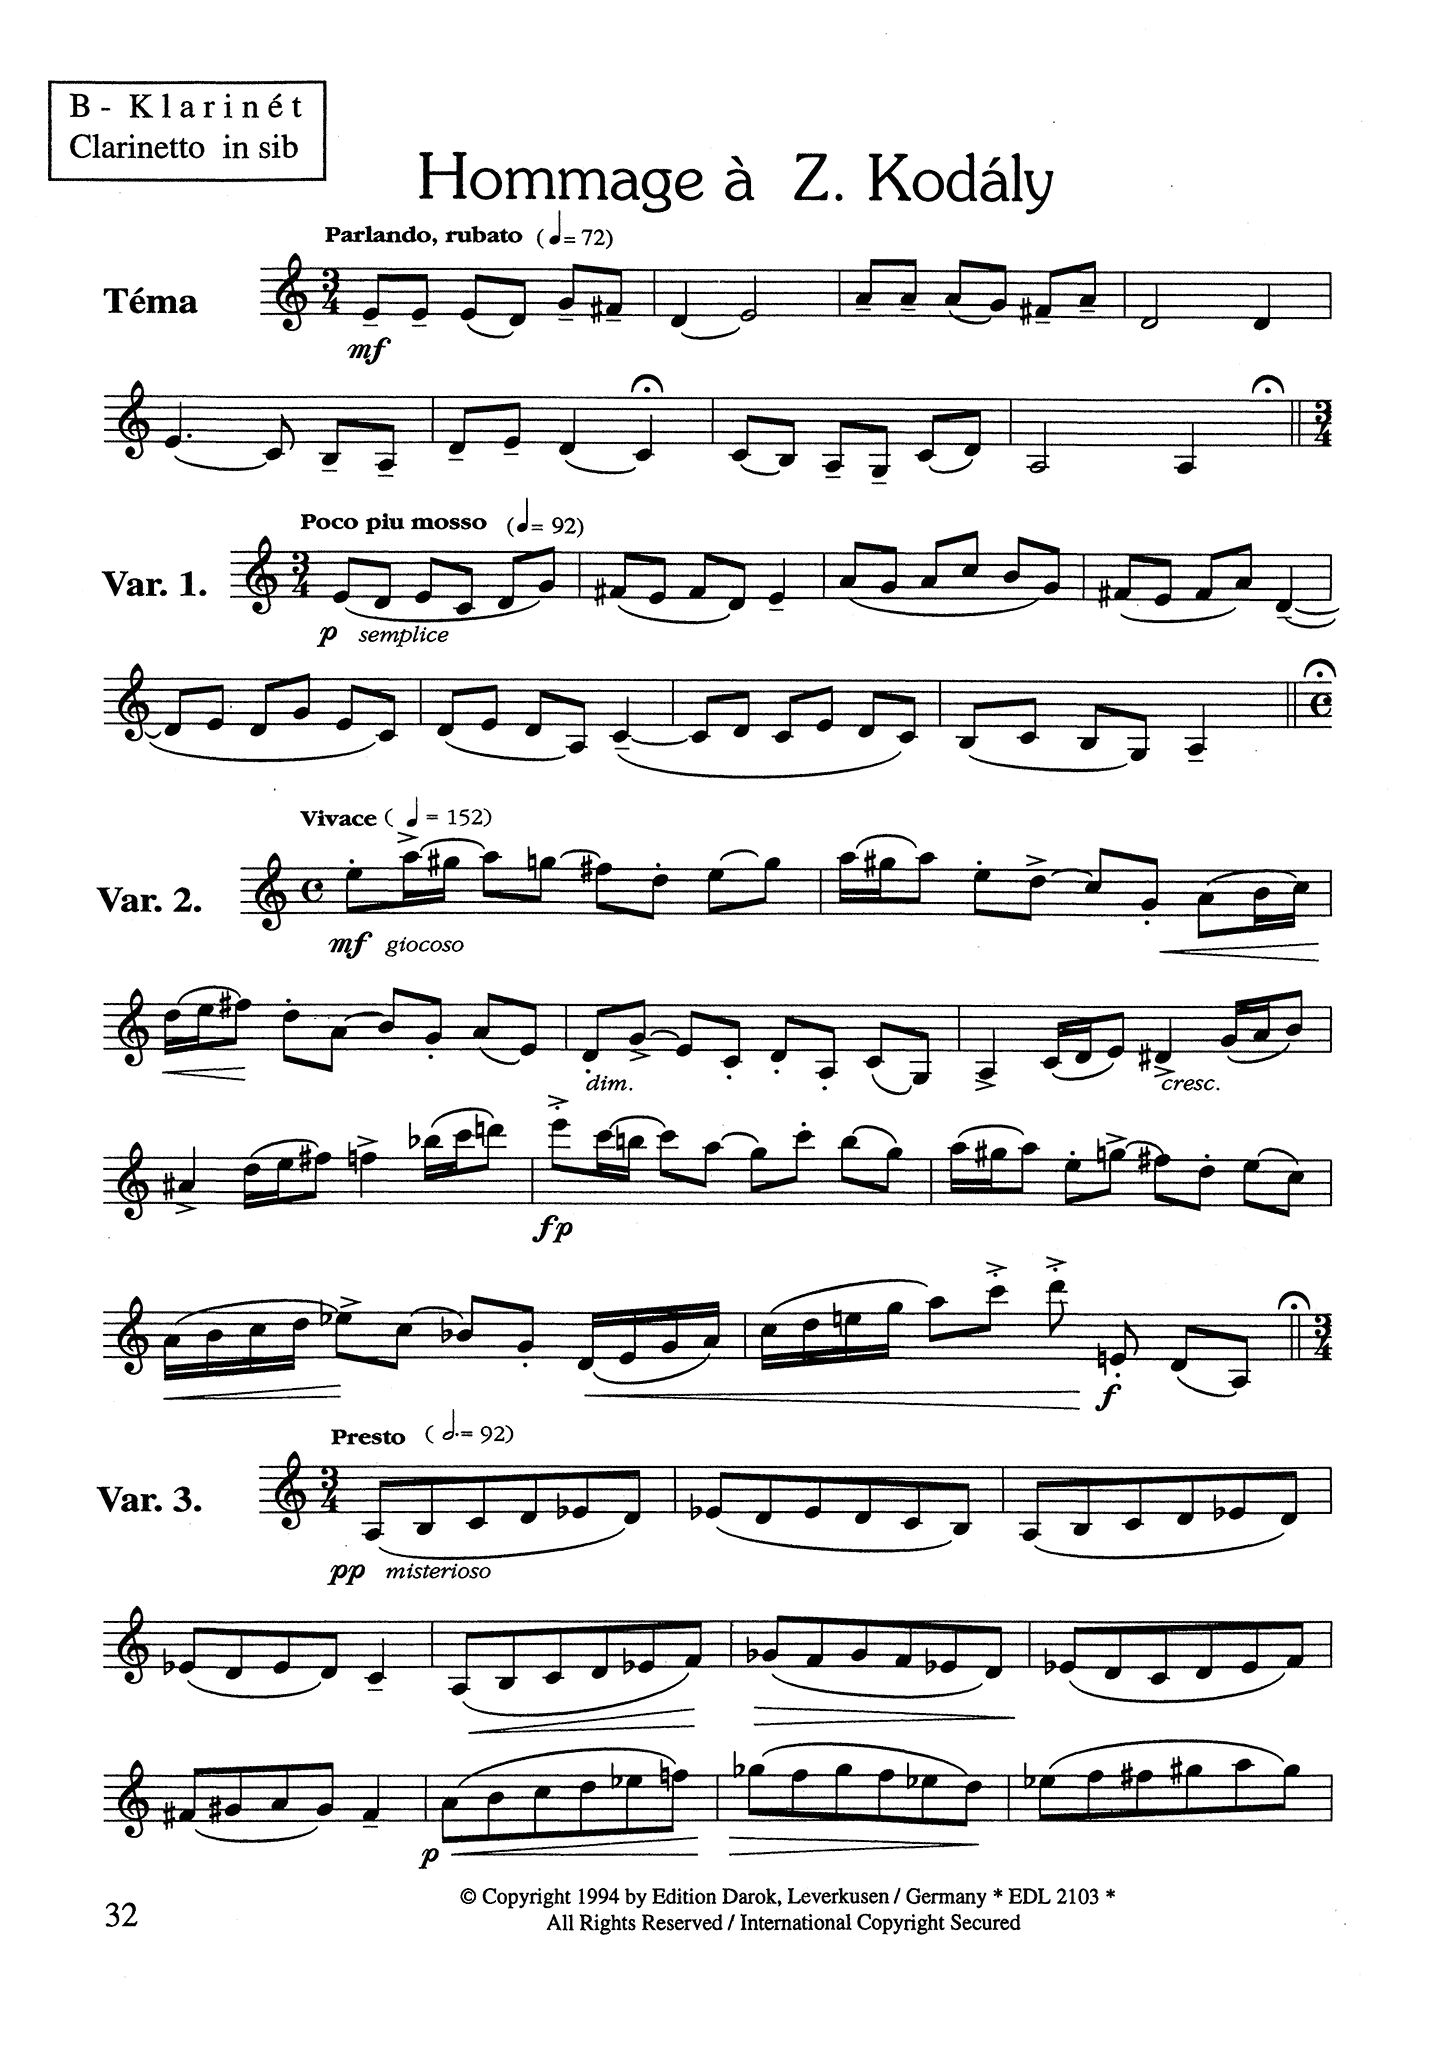 Hommages for Clarinet Page 32